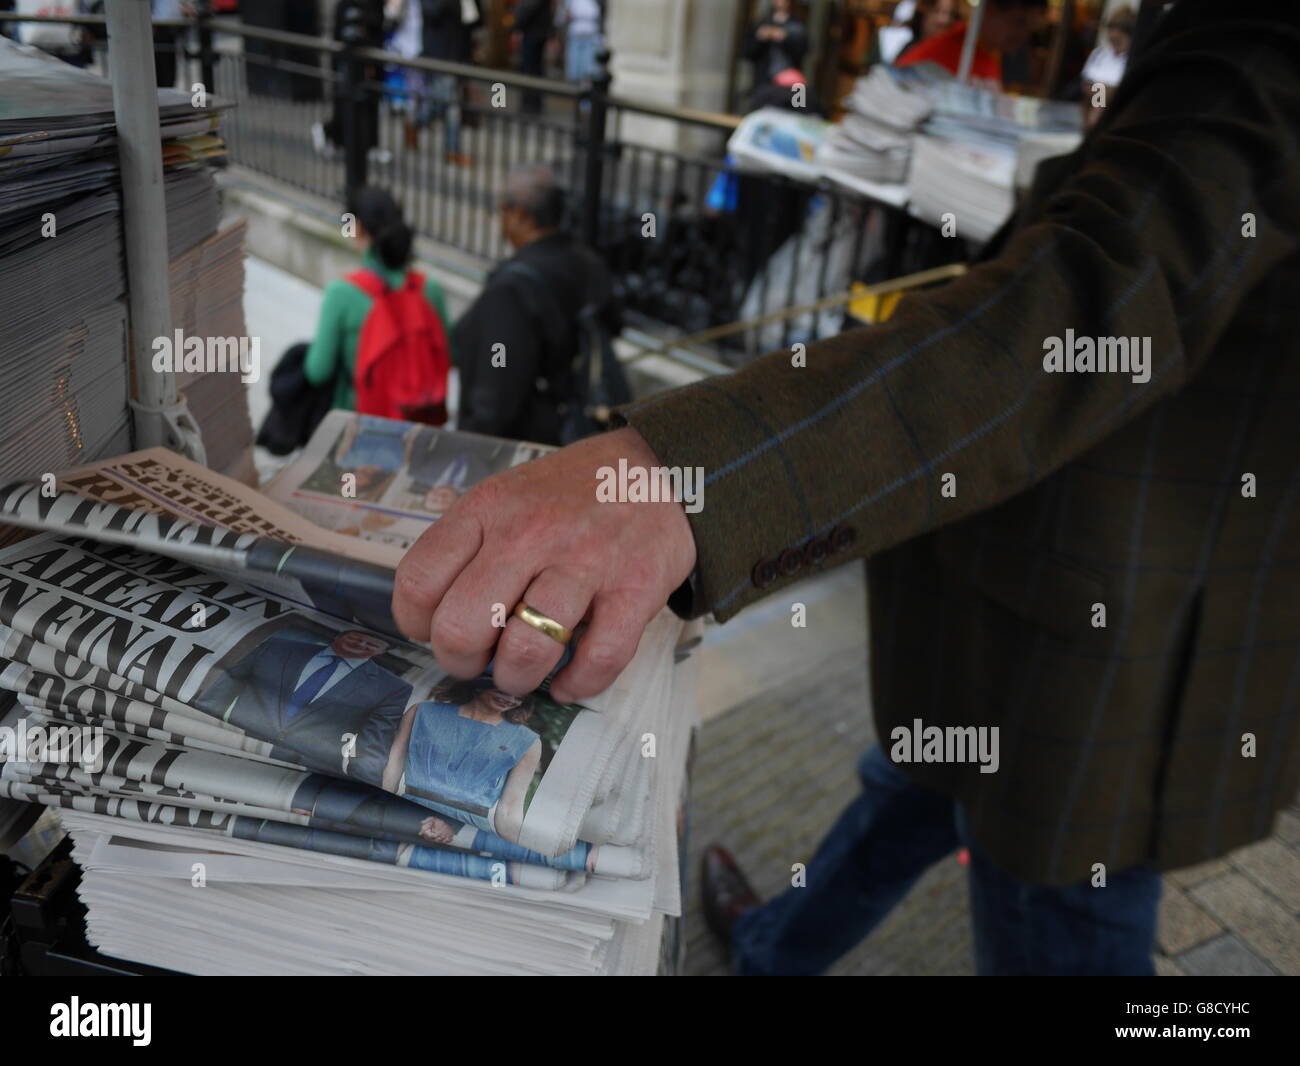 Oxford Street London Evening standard newspapers with 'Remain ahead' headline in brexit referendum - Stock Image